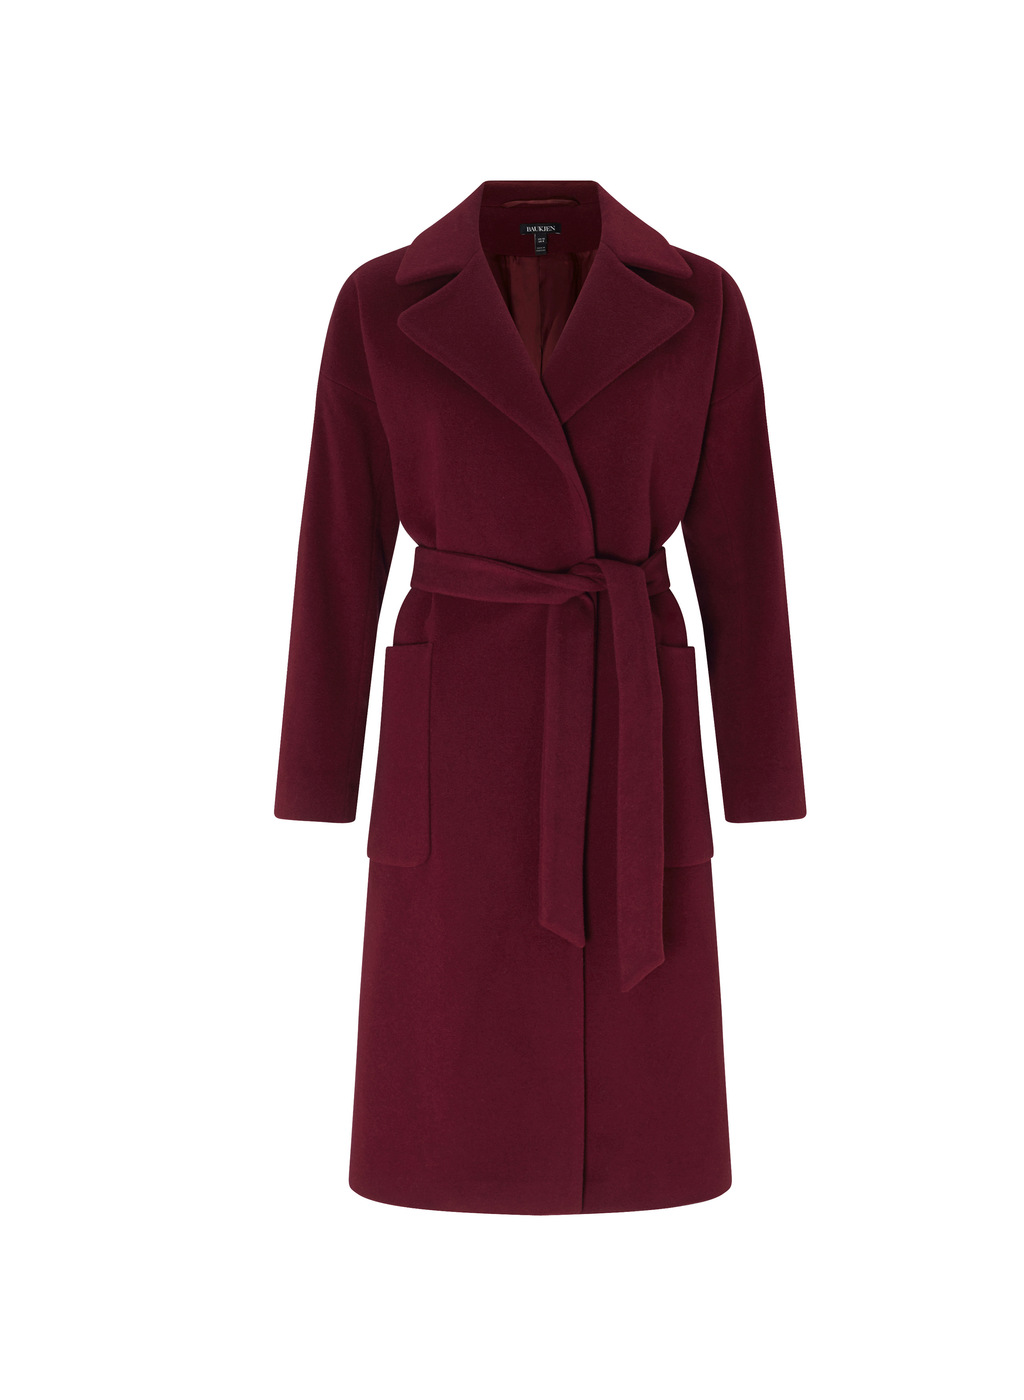 Womenswear Sailsbury Wrap Coat - pattern: plain; length: on the knee; style: wrap around; collar: standard lapel/rever collar; predominant colour: burgundy; occasions: casual; fit: tailored/fitted; waist detail: belted waist/tie at waist/drawstring; fibres: cashmere - 100%; sleeve length: long sleeve; sleeve style: standard; texture group: knits/crochet; collar break: medium; pattern type: knitted - fine stitch; season: a/w 2016; wardrobe: highlight